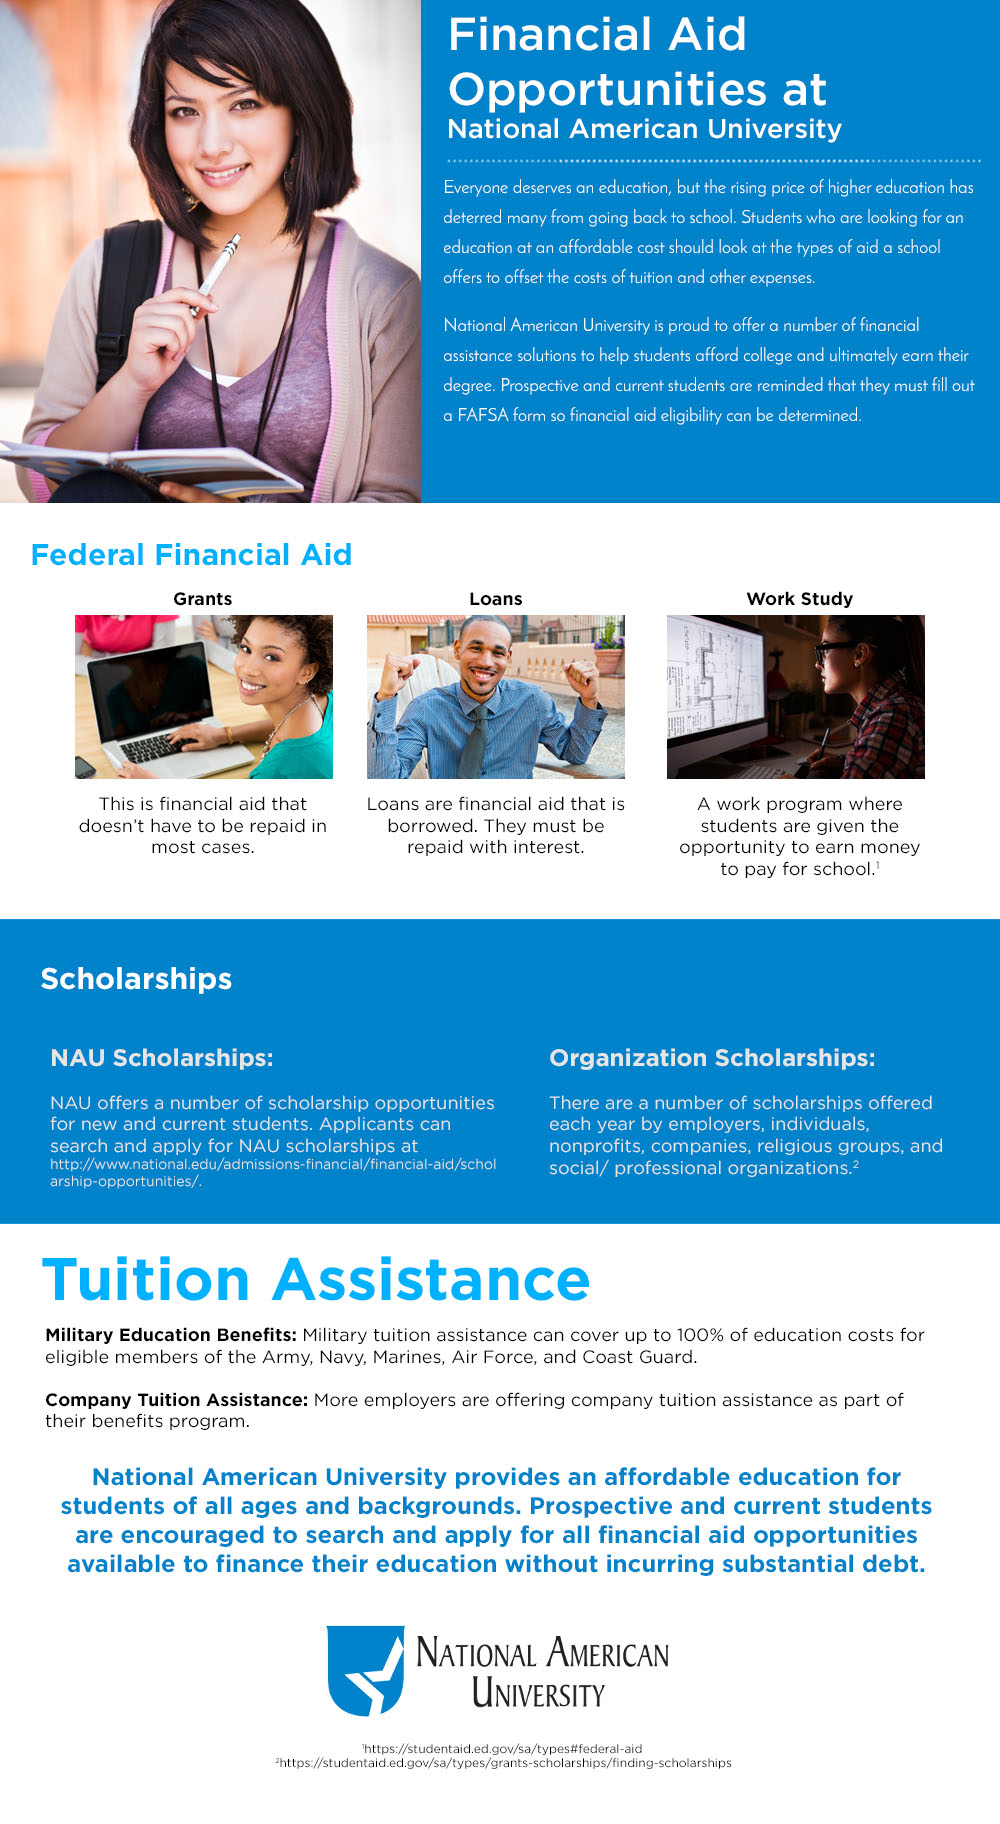 NationalEDU_Infographic_Financial-Aid-Opportunities-at-National-American-University